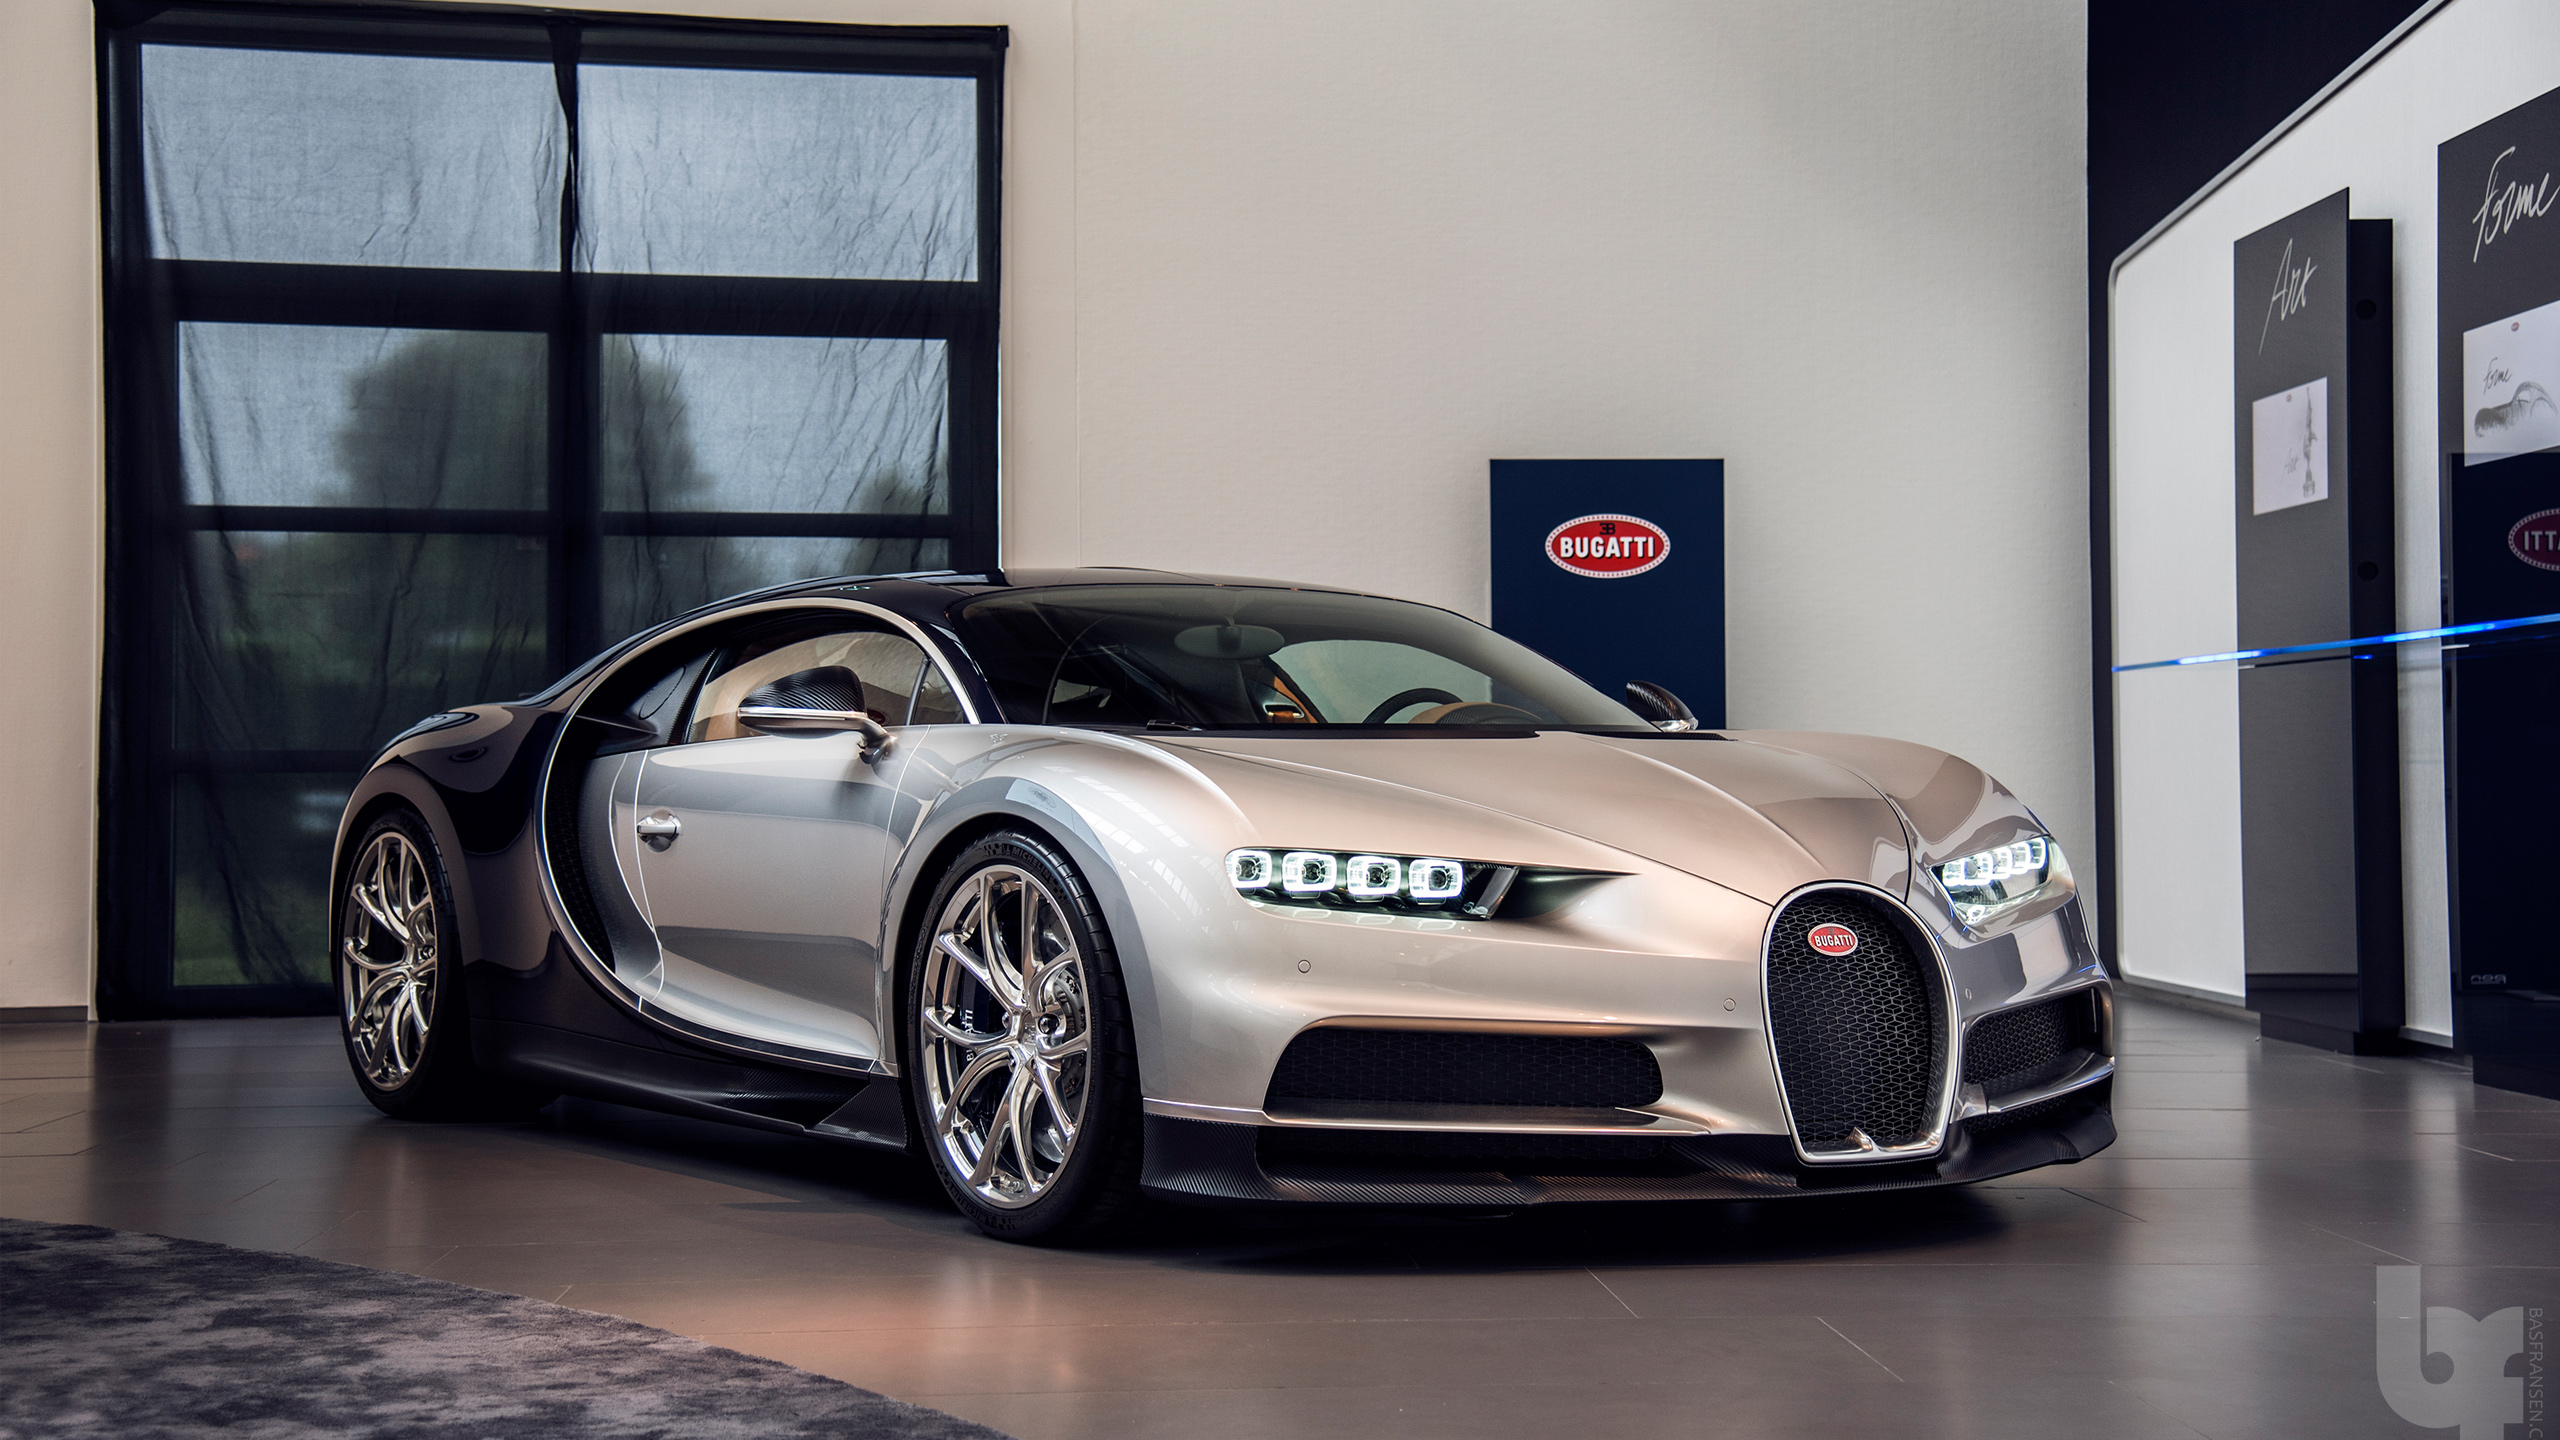 Bugatti Cars Expensive Cars: Bugatti Chiron Most Expensive Car Wallpaper